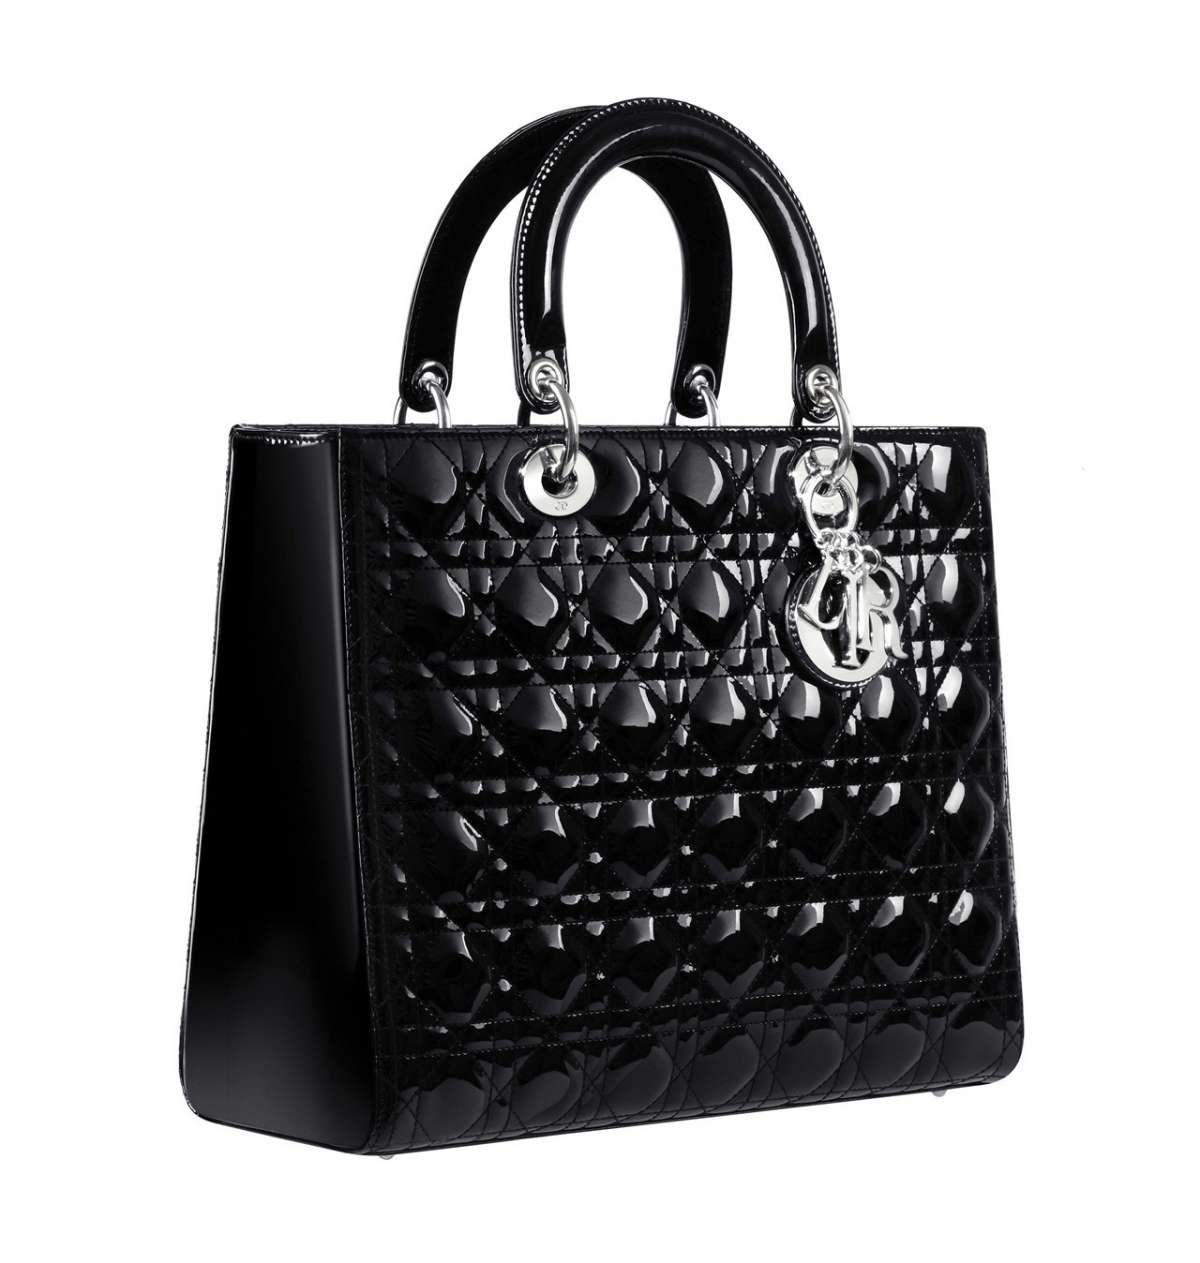 Lady Dior in vernice nera